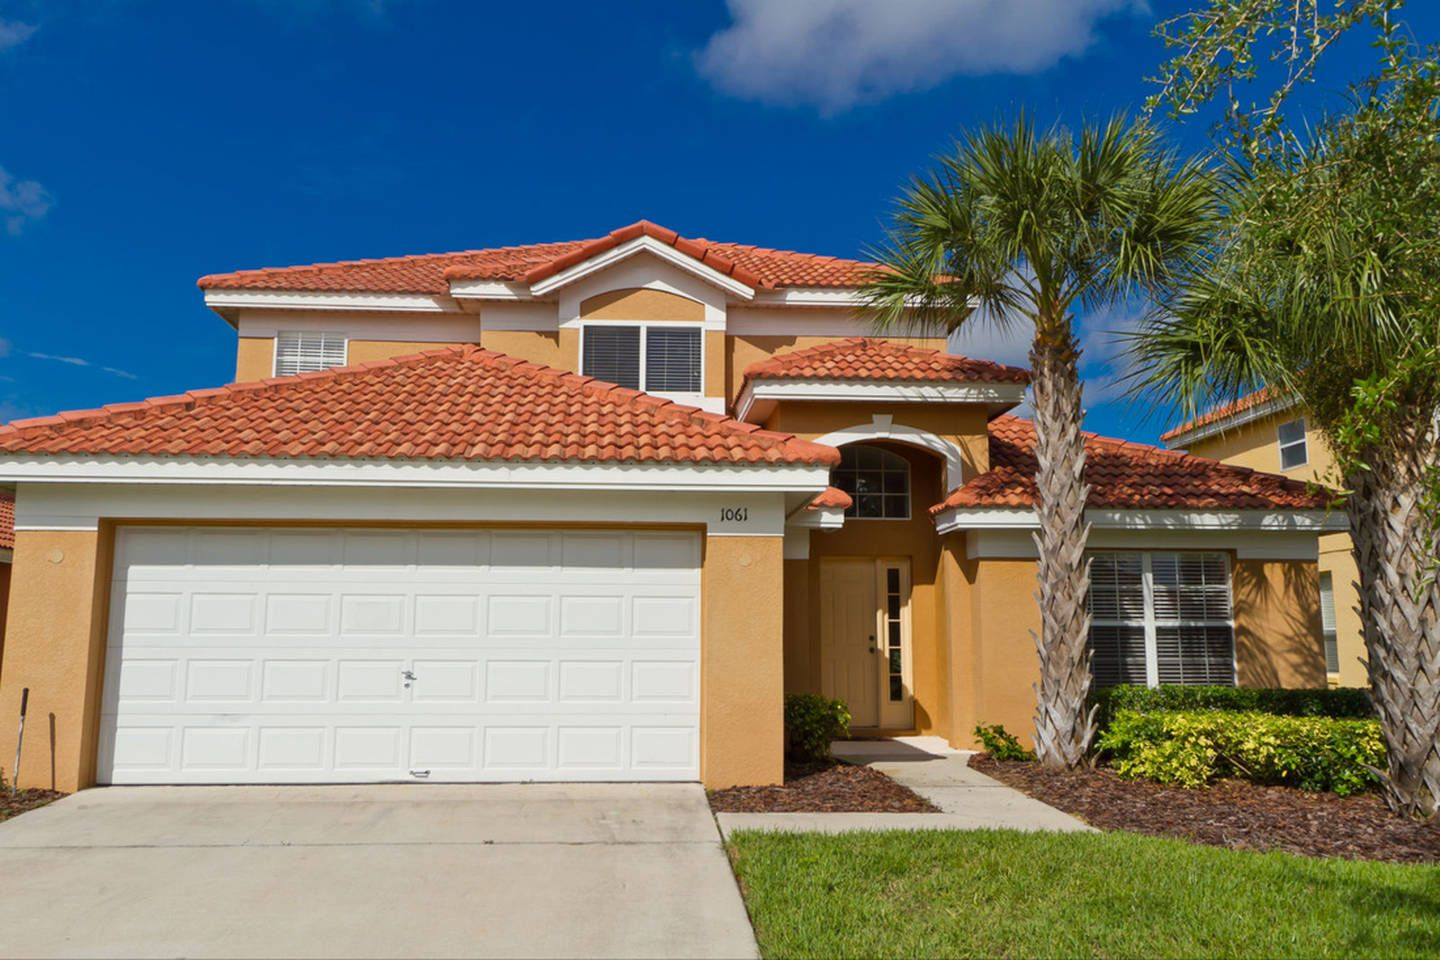 5 Bed 3 Bath Pool Disney 12 Mins In Davenport Cool House Designs Condos In Florida Vacation Home